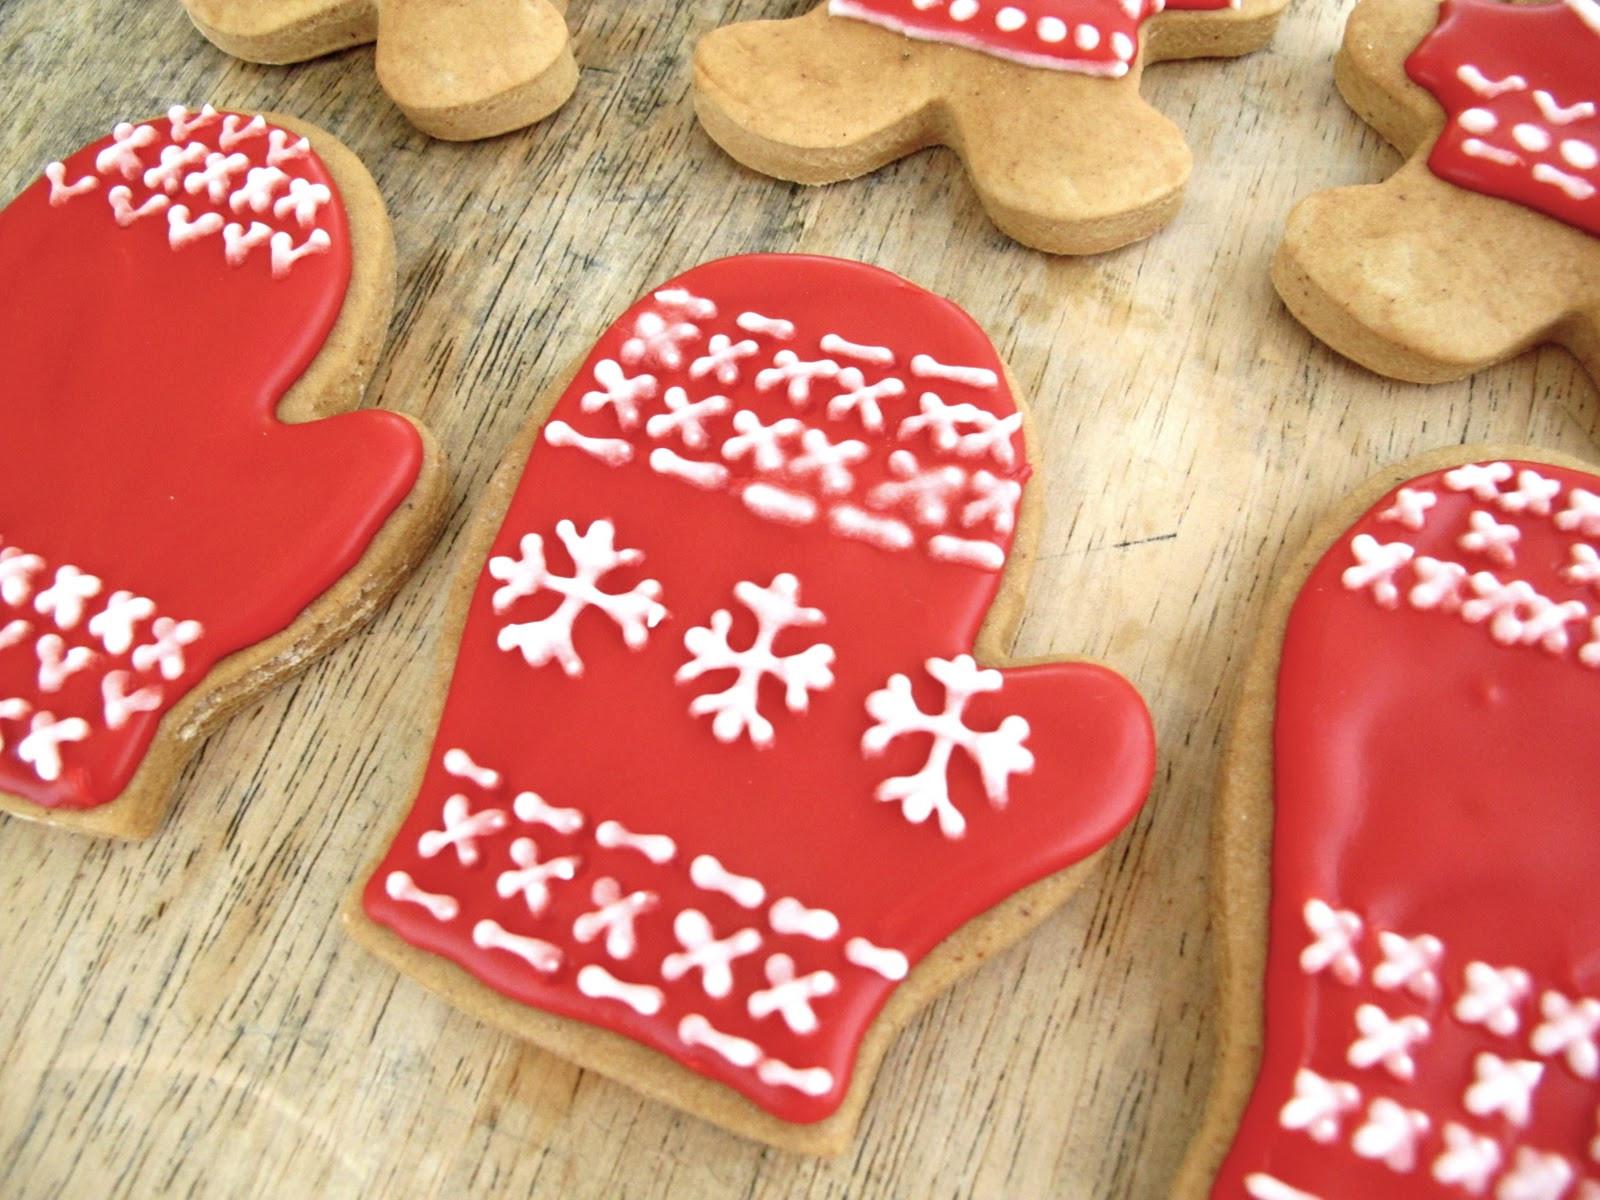 Pictures Of Christmas Cookies Decorated  Jenny Steffens Hobick Gingerbread Cookies